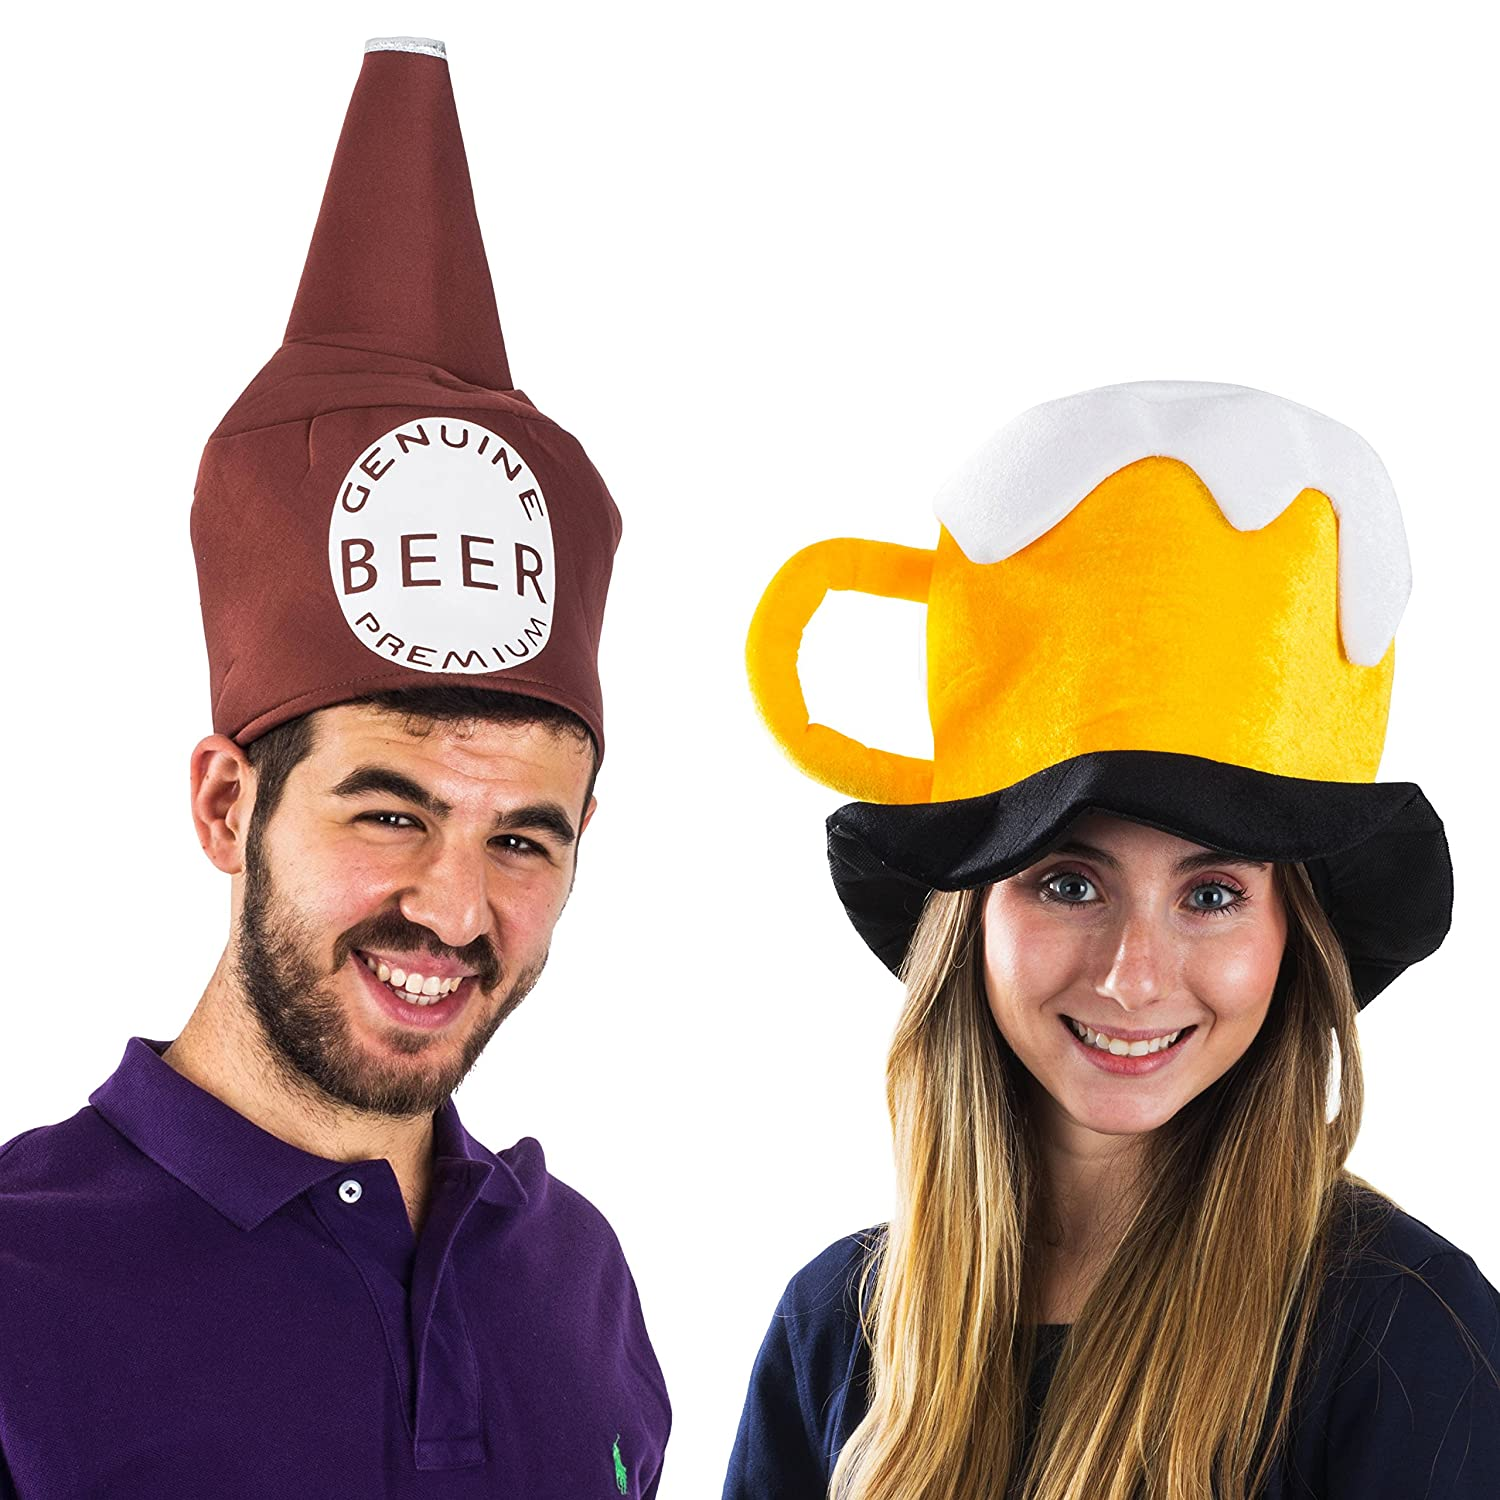 Amazon.com  Tigerdoe Beer Hats - 2 Pack - Party Hats for Adults - Beer Mug  Hat - Beer Bottle Hat - Couples Costumes  Clothing 5562a1785b6